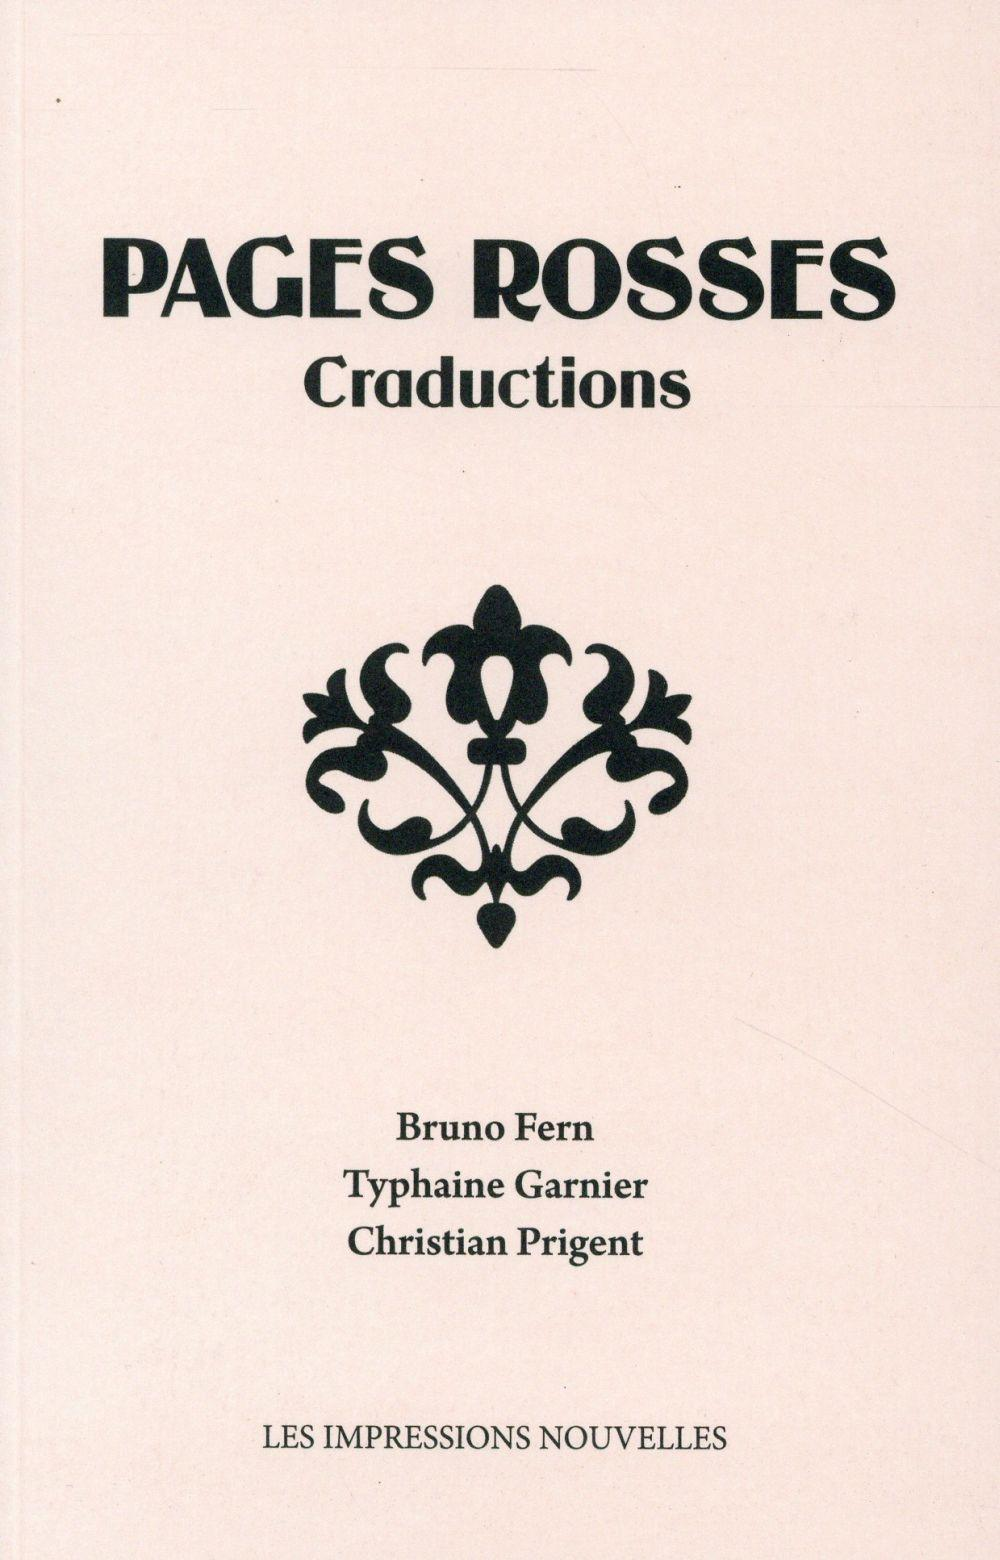 Pages rosses ; craductions  - Typhaine Garnier  - Bruno Fern  - Christian Prigent